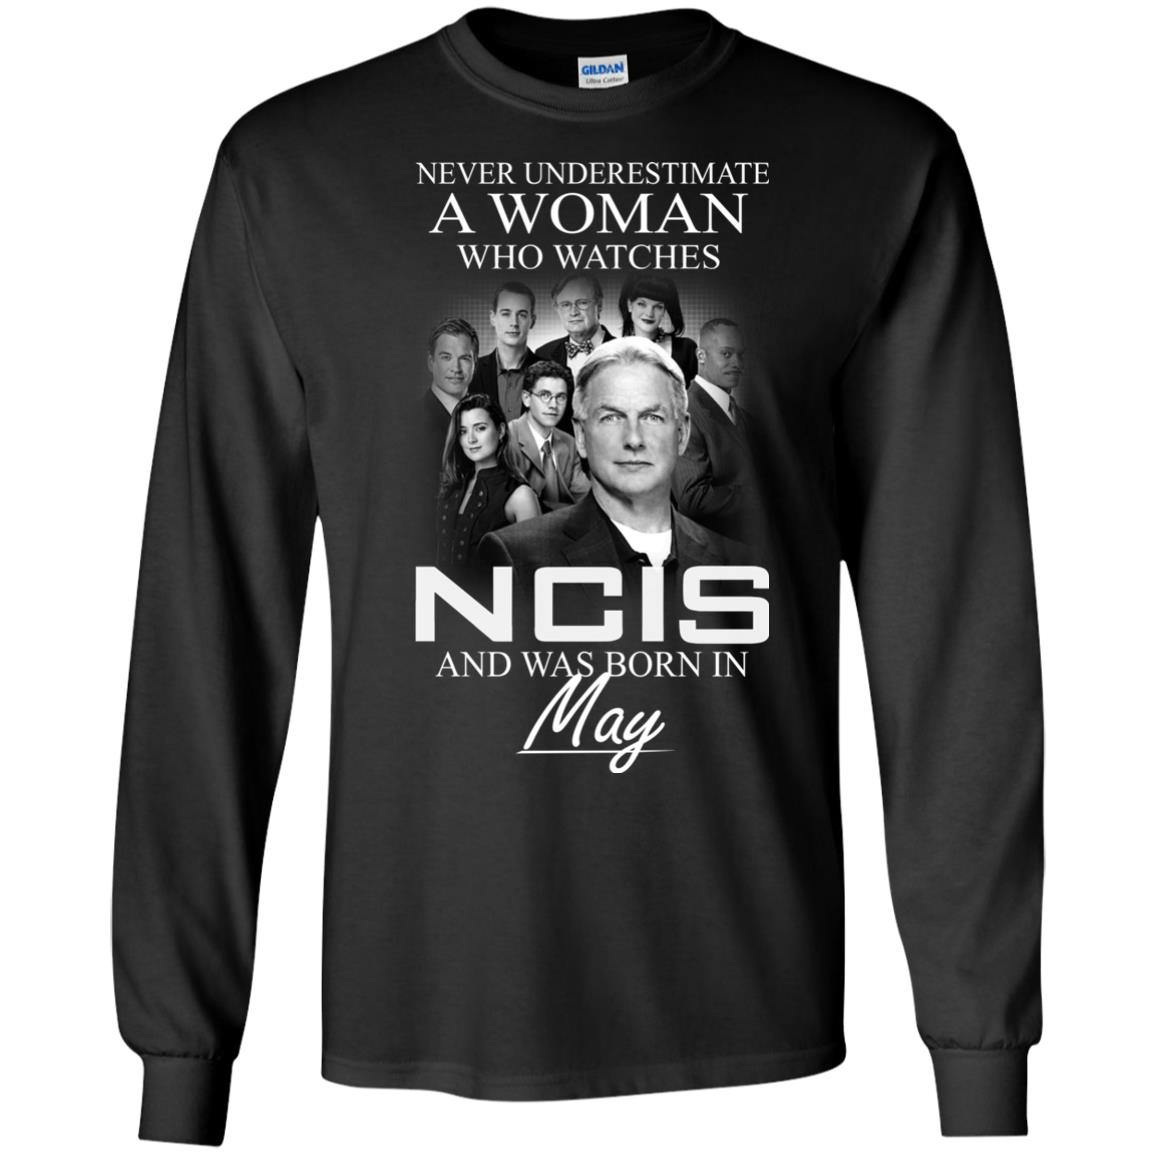 Never underestimate A Woman who watches NCIS and was born in May shirt - image 1184